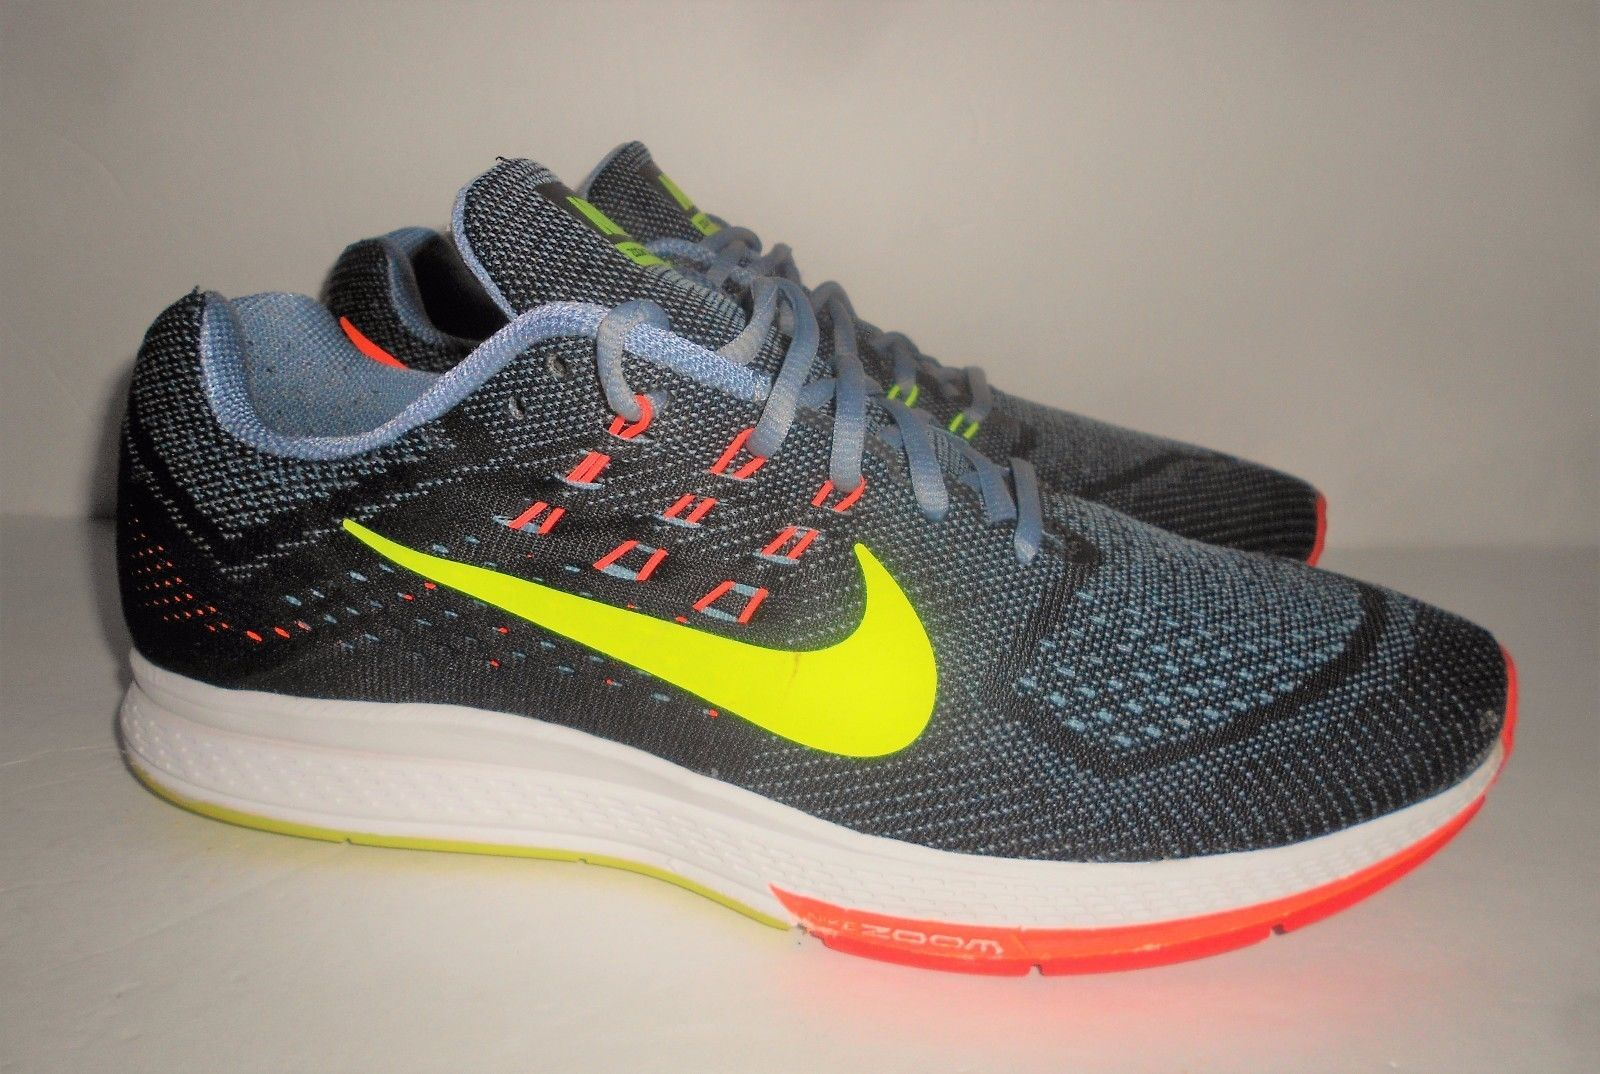 separation shoes 44339 b0c0e NIKE AIR ZOOM STRUCTURE 18 MENS RUNNING SHOES Sz 12 BLACK  VOLT 683731 001  GREEN